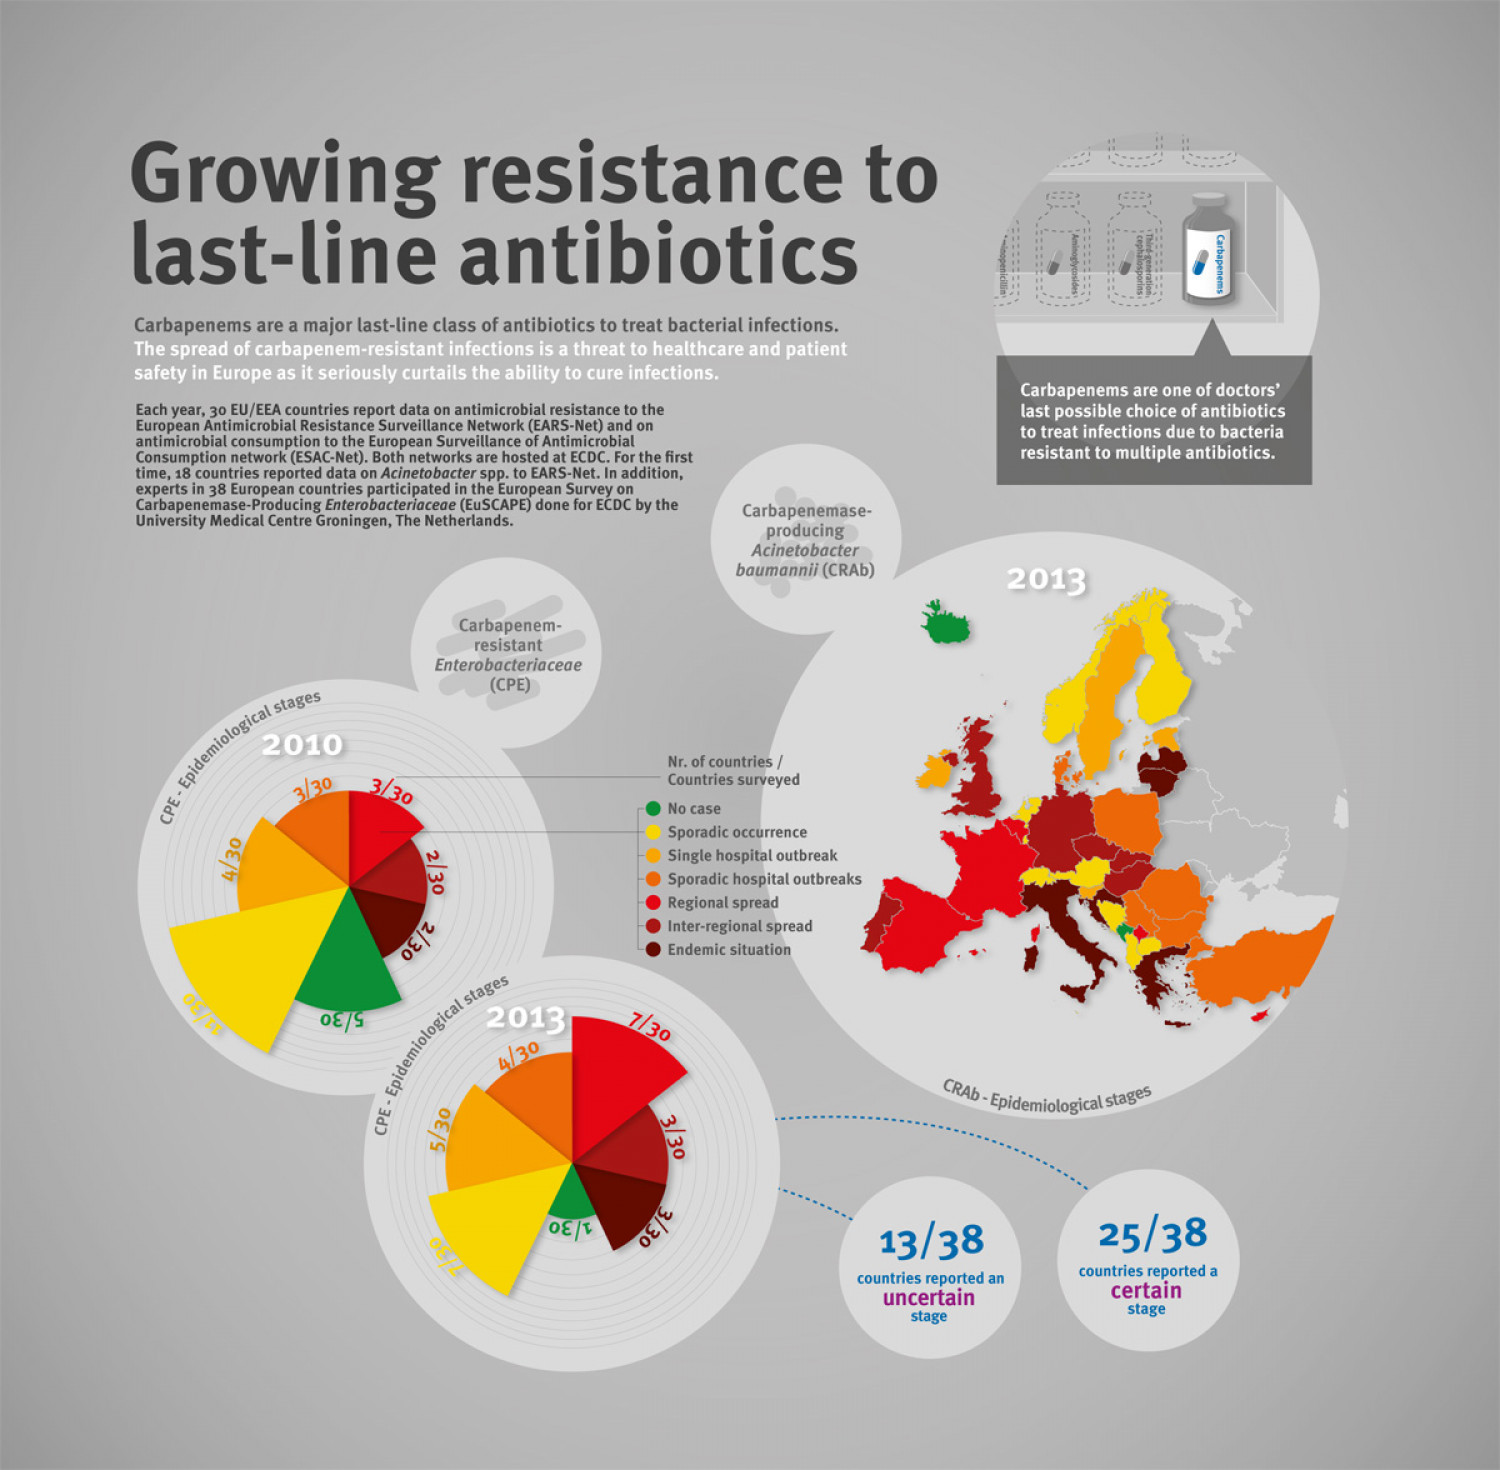 Growing resistance to carbapenems Infographic